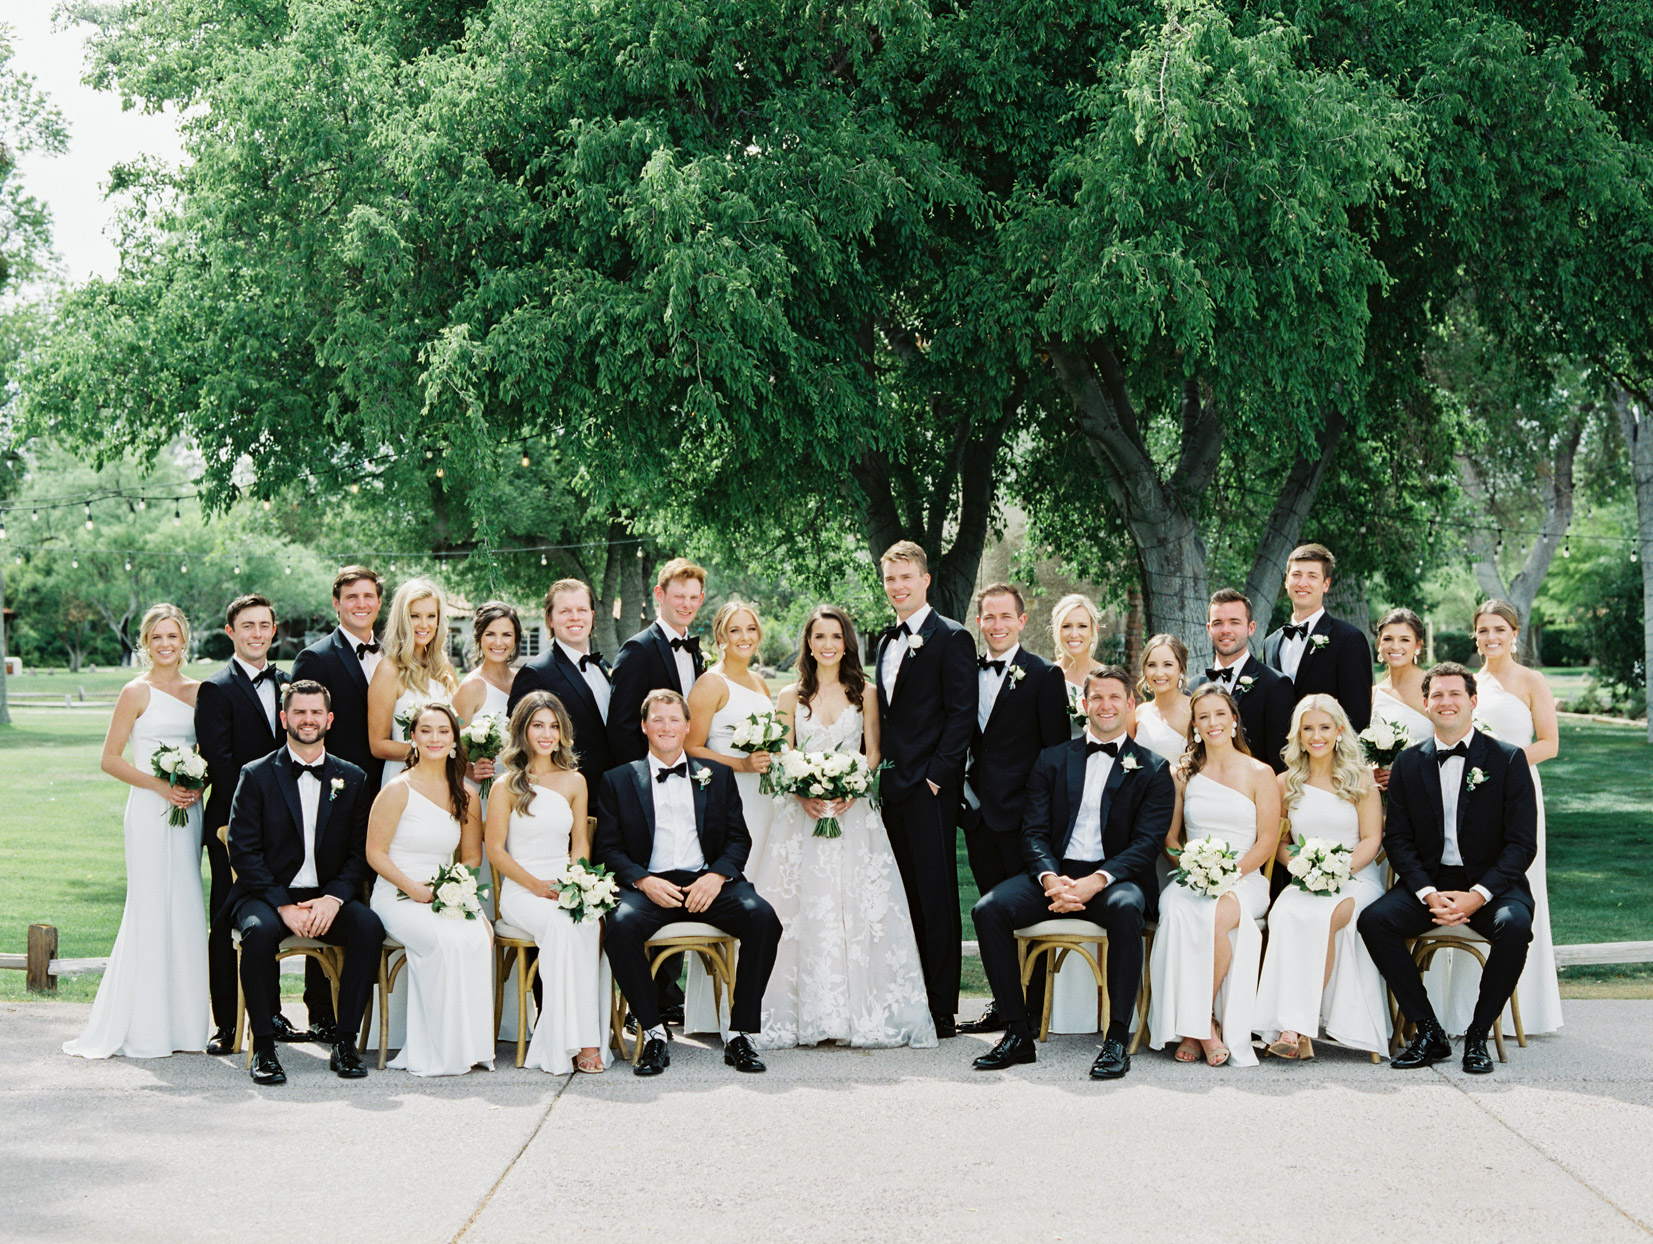 bride and groom with wedding party all wearing black and white